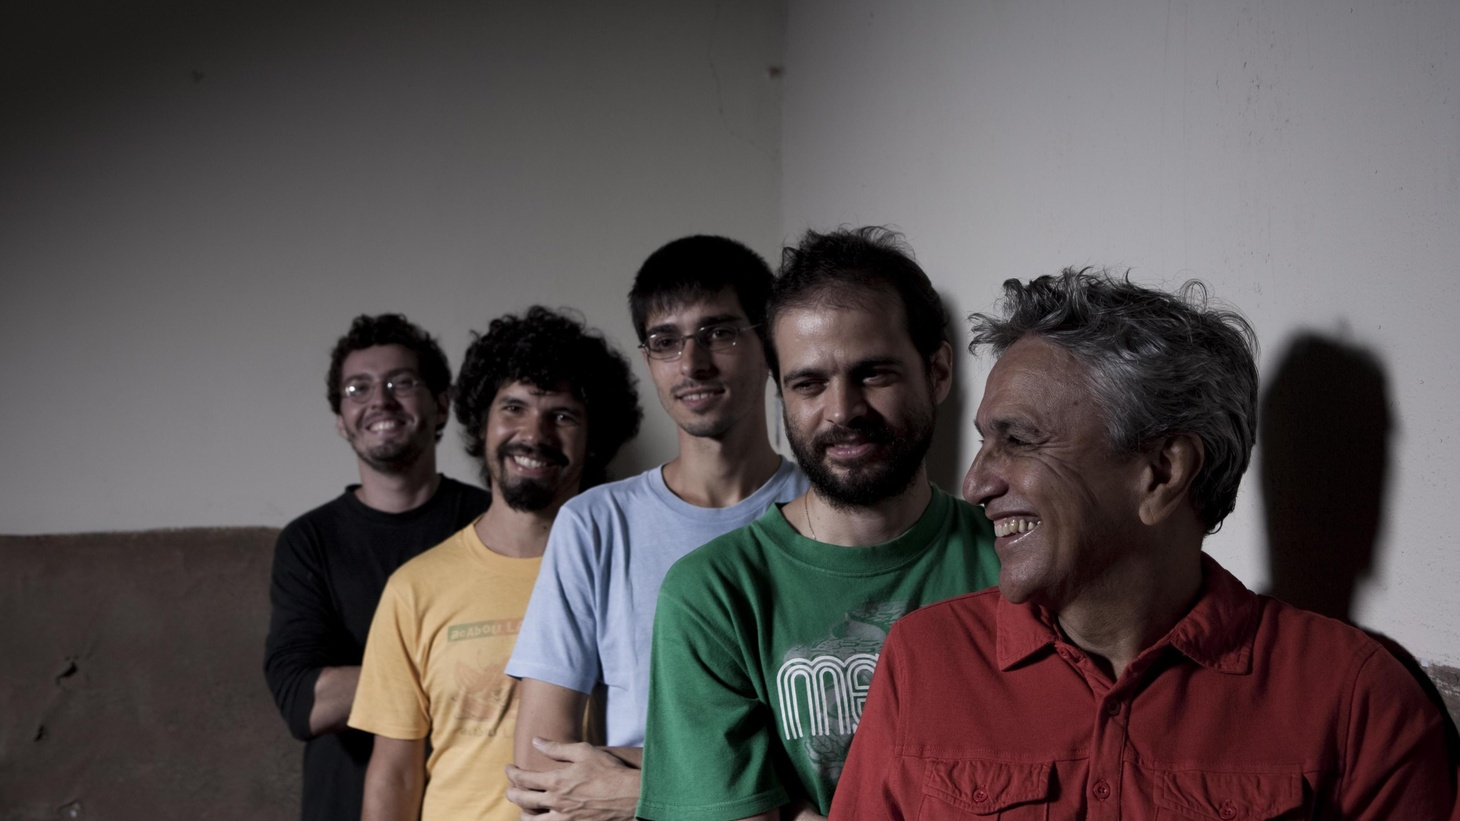 'Abracaco' serves as a nice capper that shows Caetano Veloso at his best, while also looking to the future.